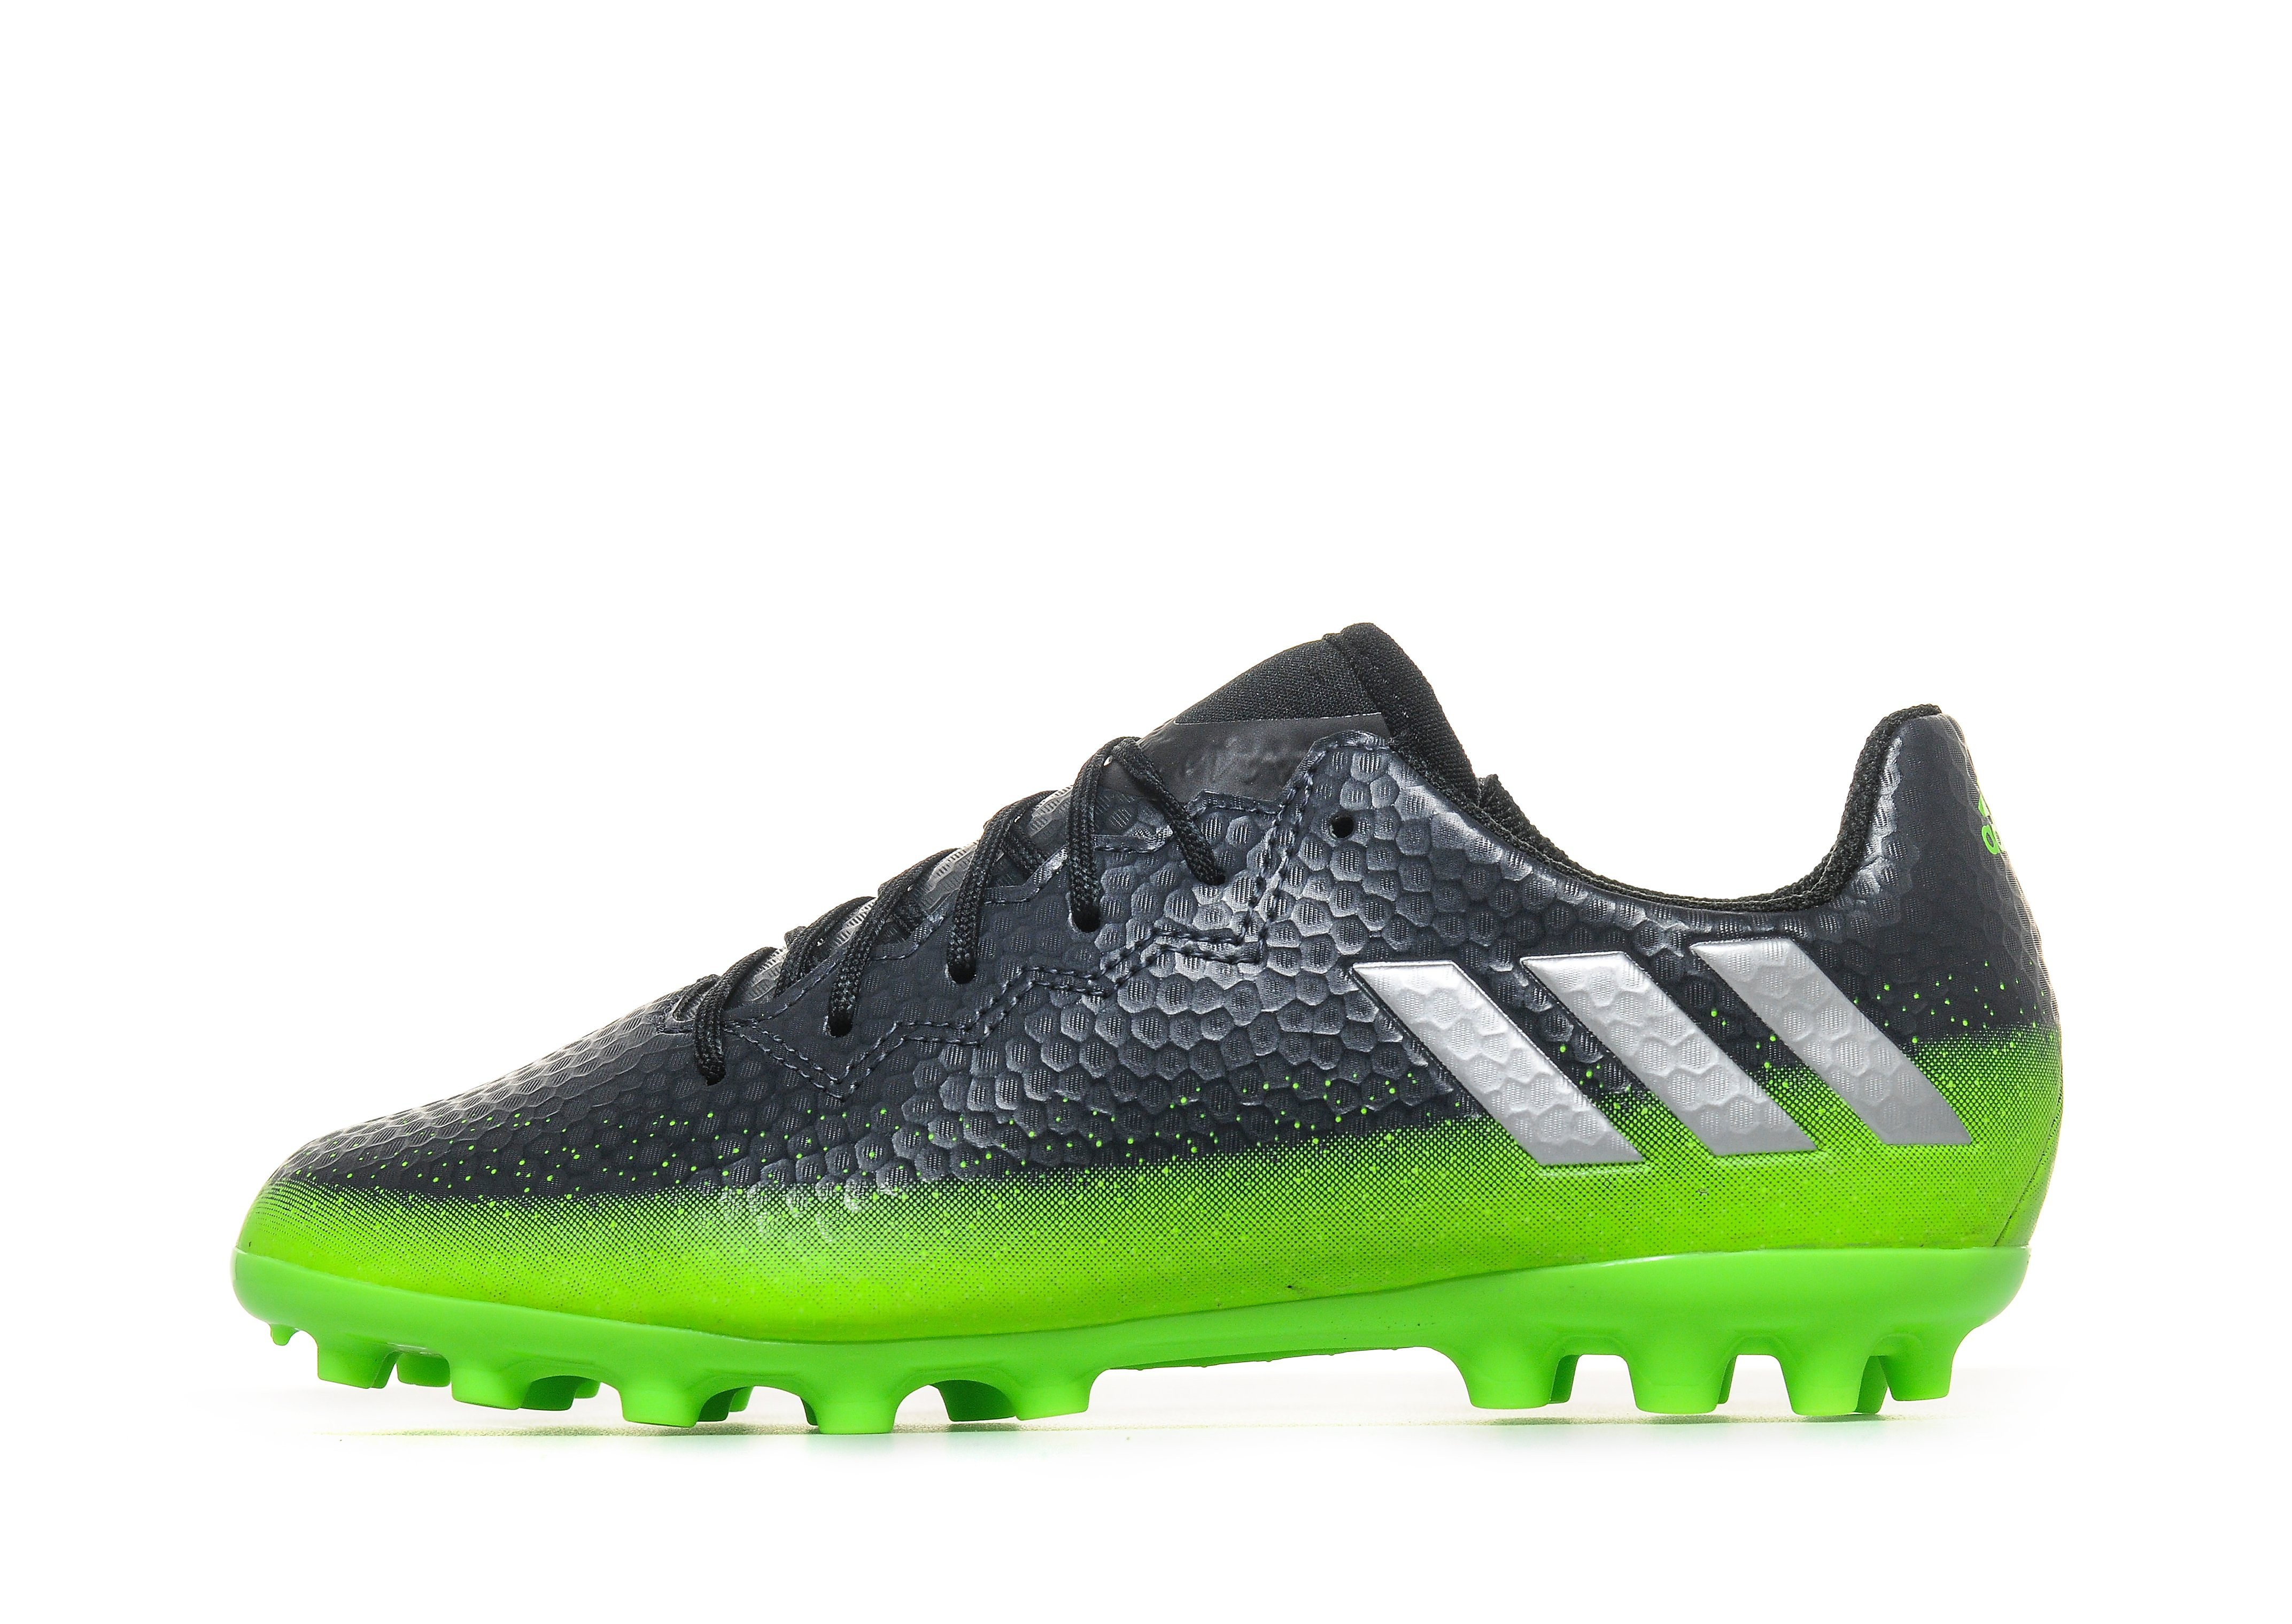 adidas Space Dust Messi 16.3 AG Children